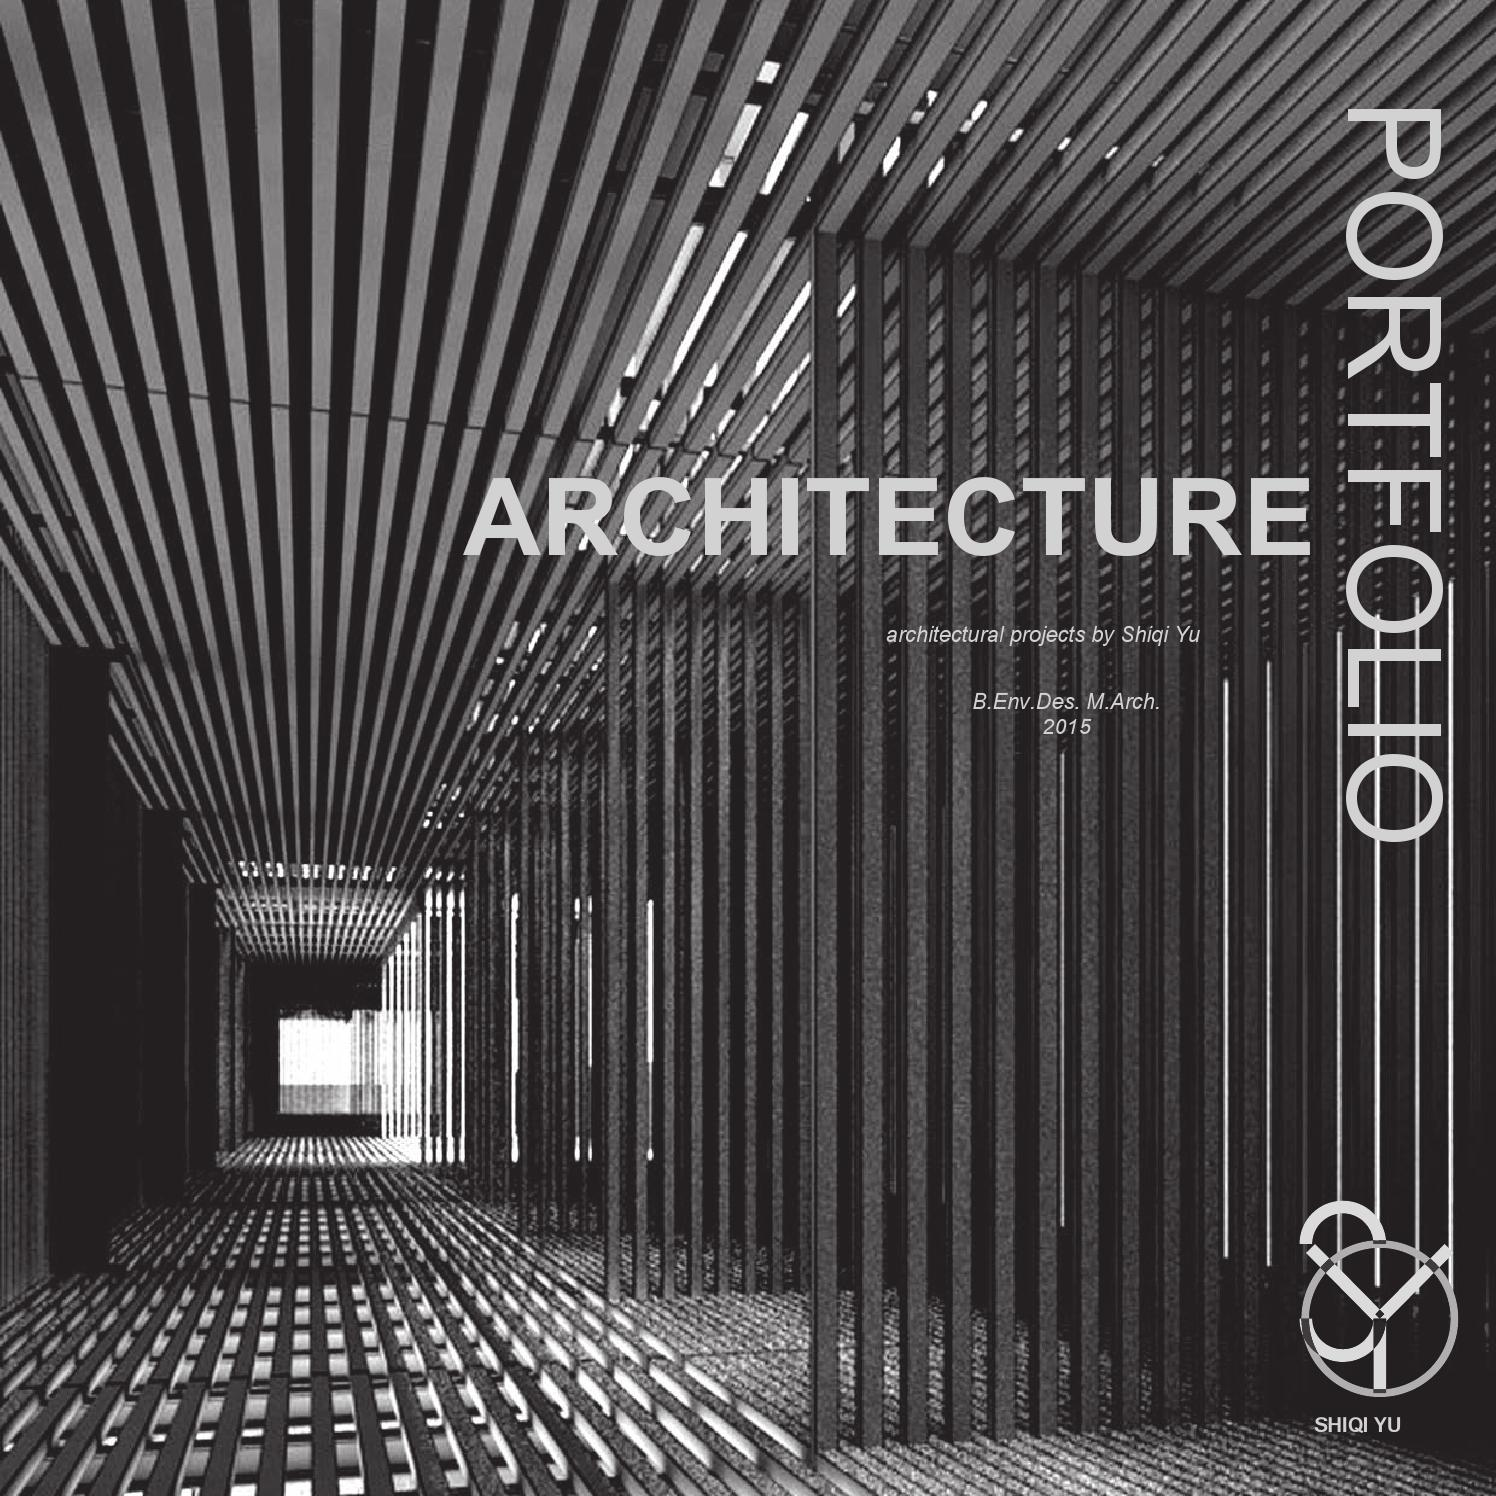 Book Cover Architecture Pdf : Architecture portfolio by shiqi yu page issuu